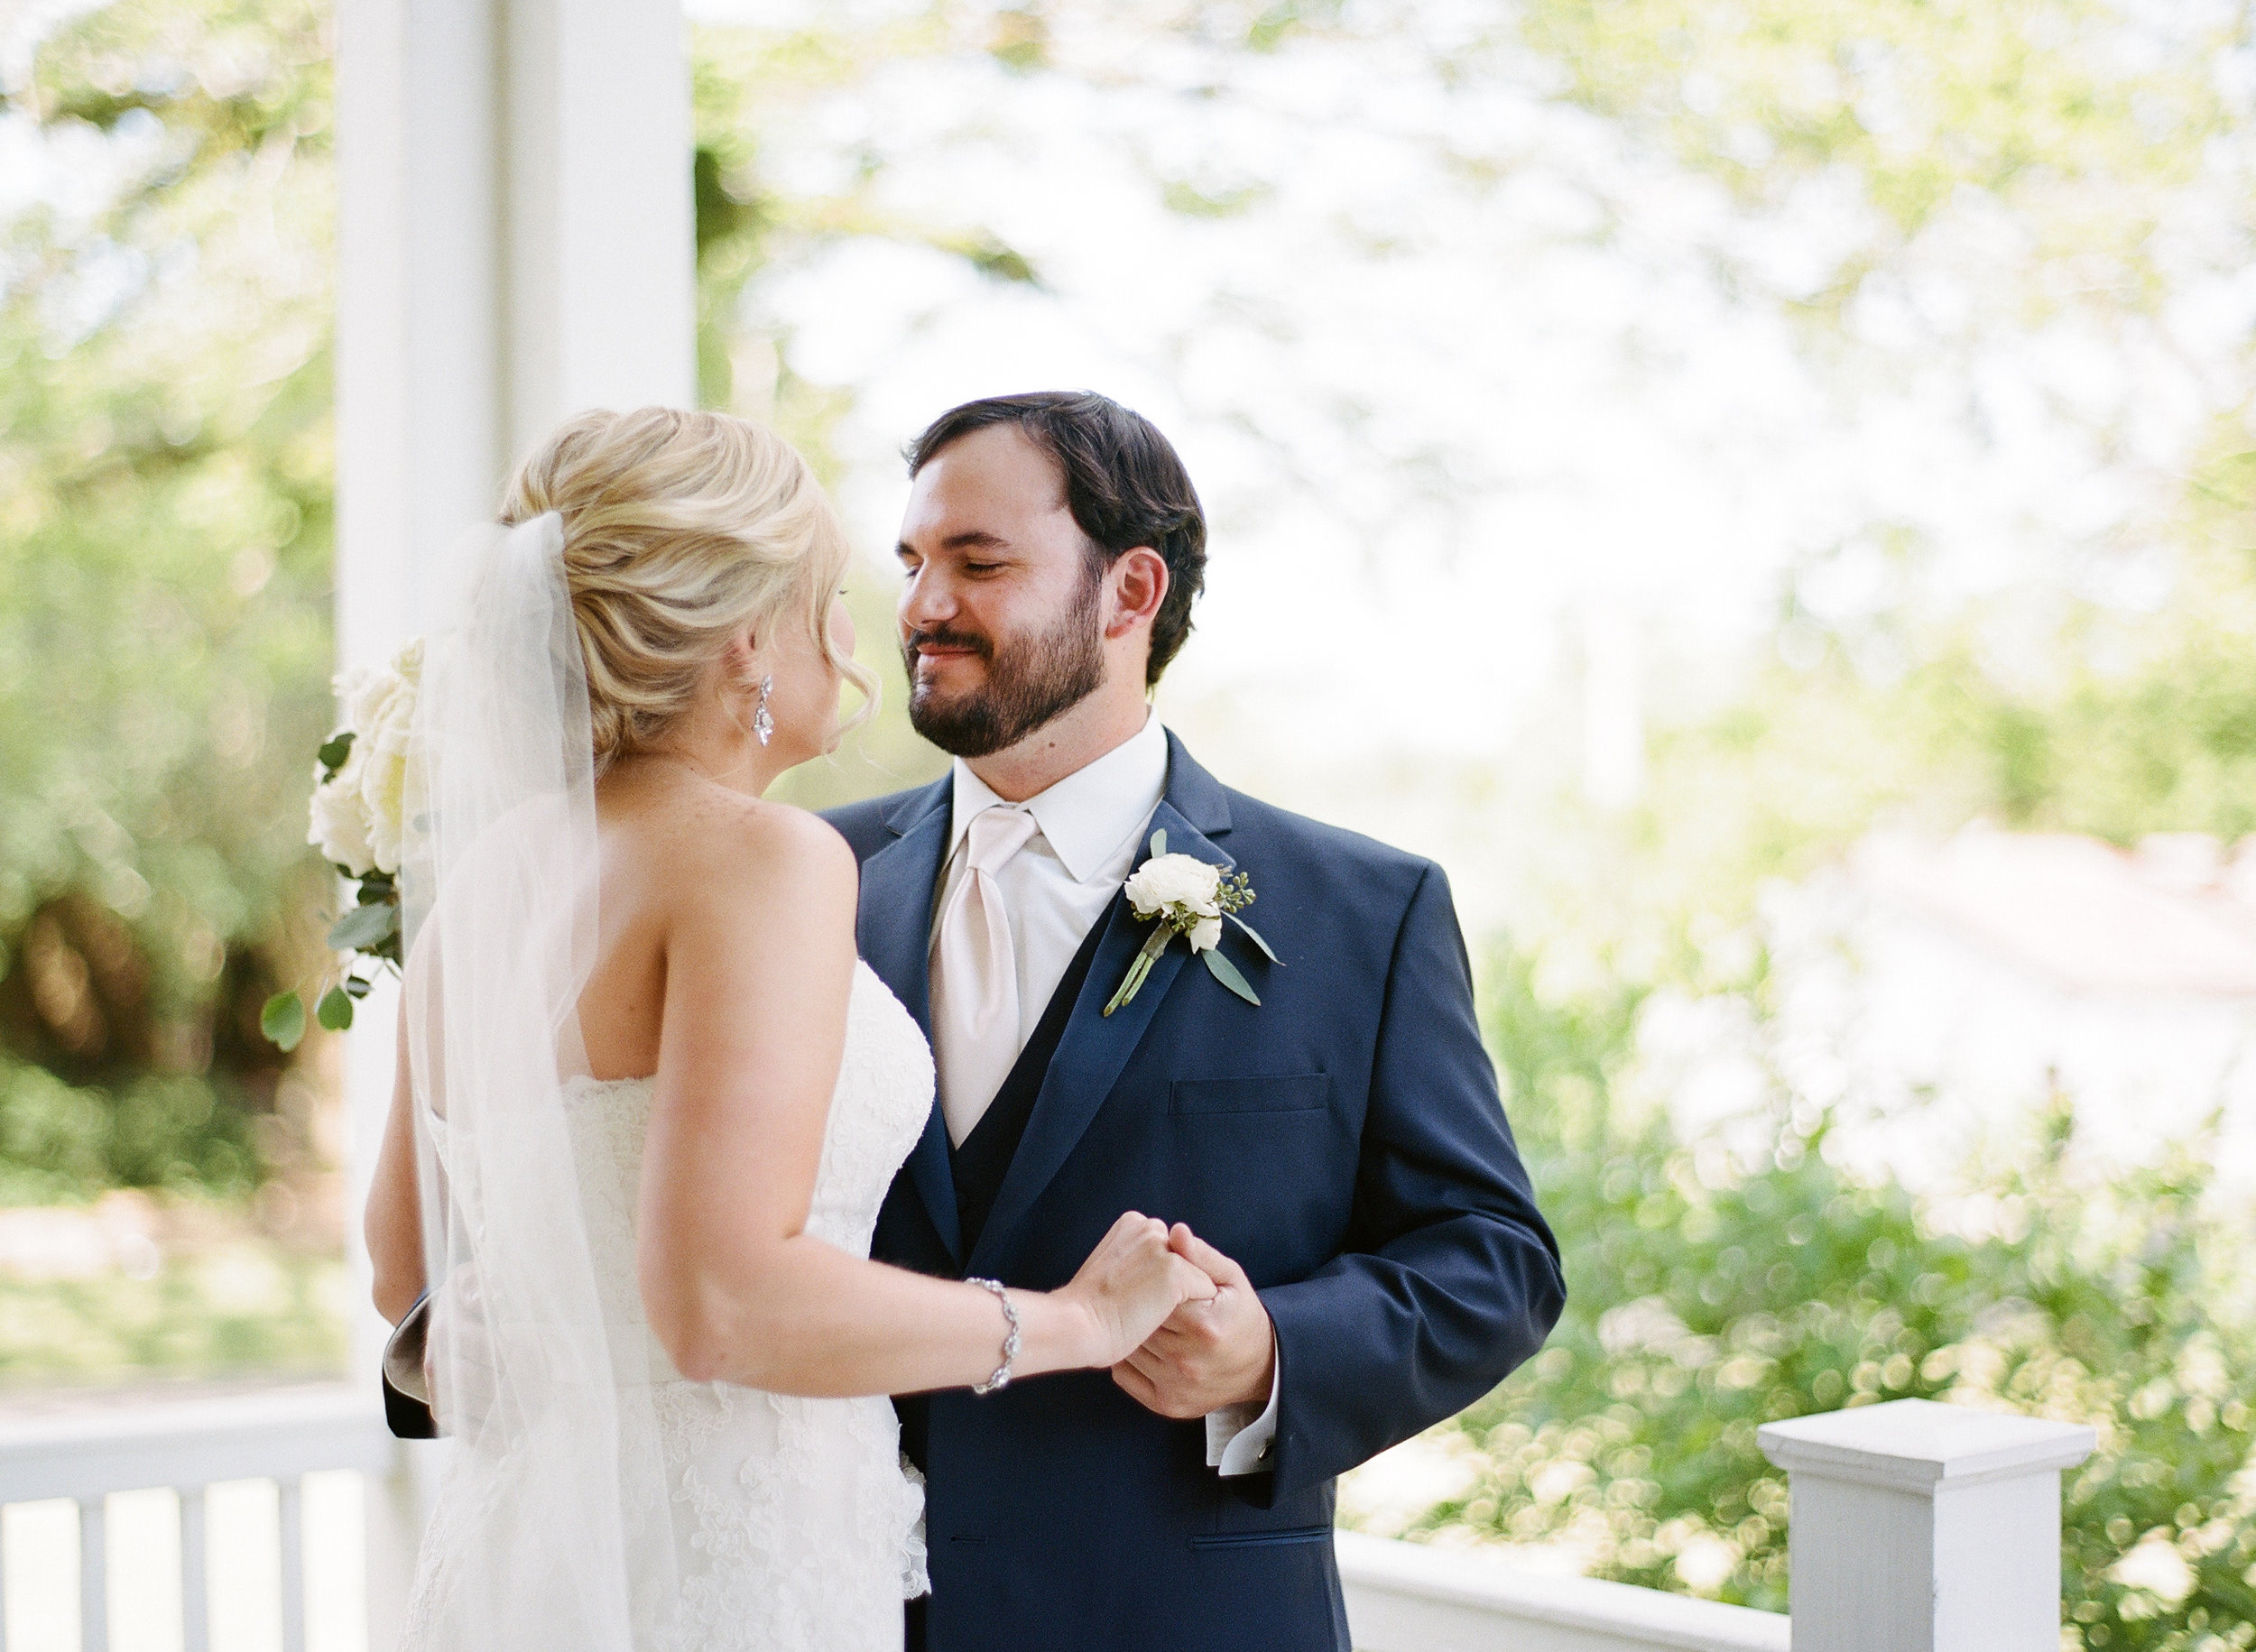 Southern Fete, Southern Wedding, Bride and Groom, Catherine Guidry Photography, Styled by Michelle Judice